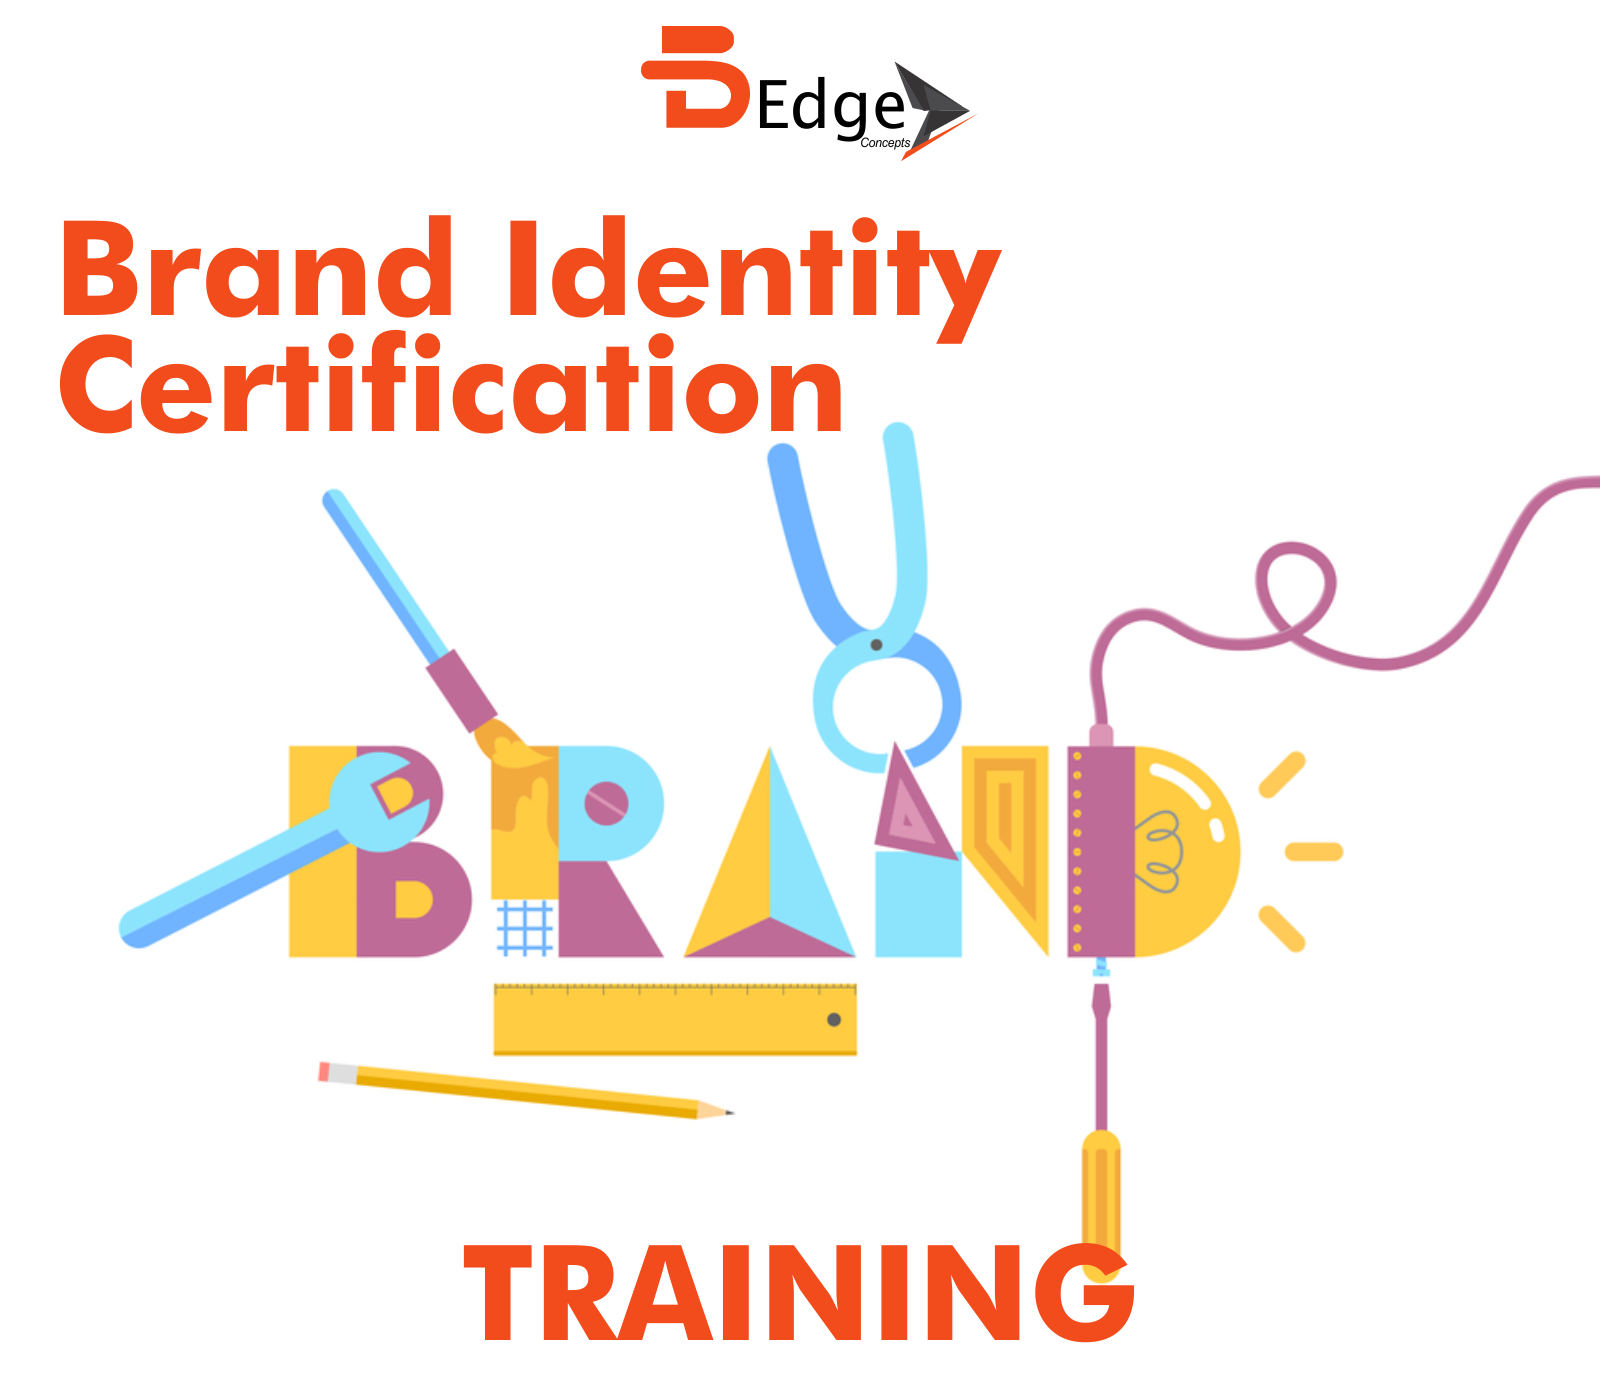 Brand Identity Certification Training